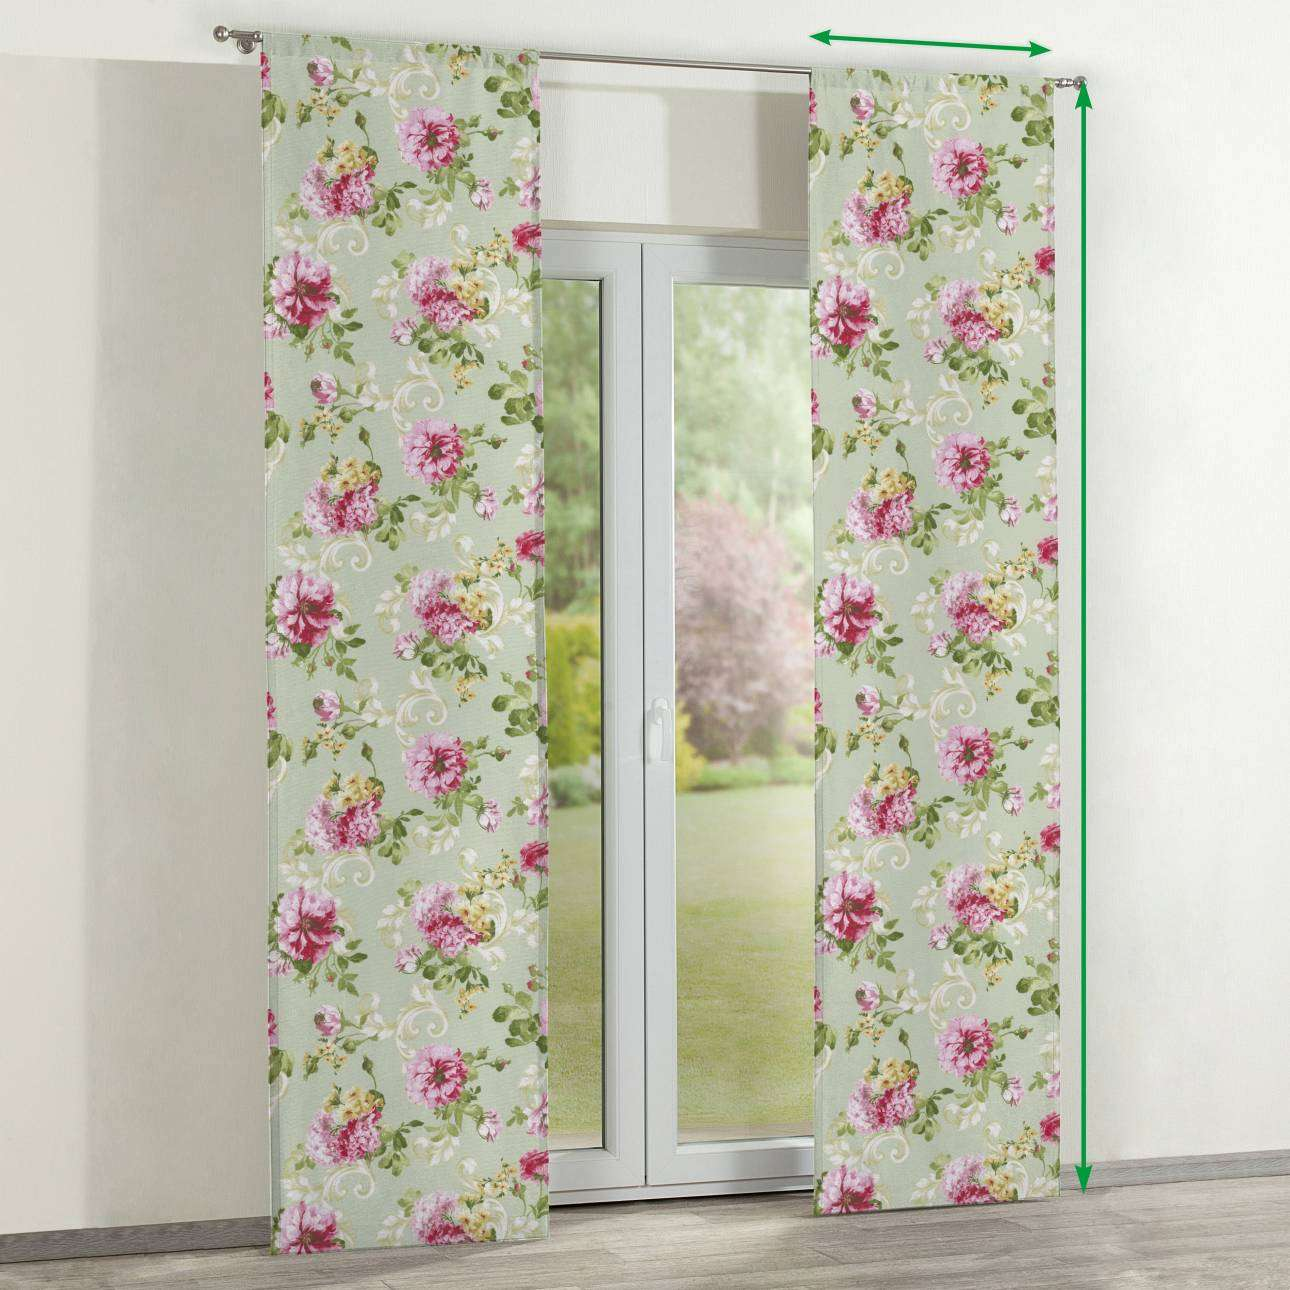 Slot panel curtains – Set of 2 in collection Flowers, fabric: 311-10